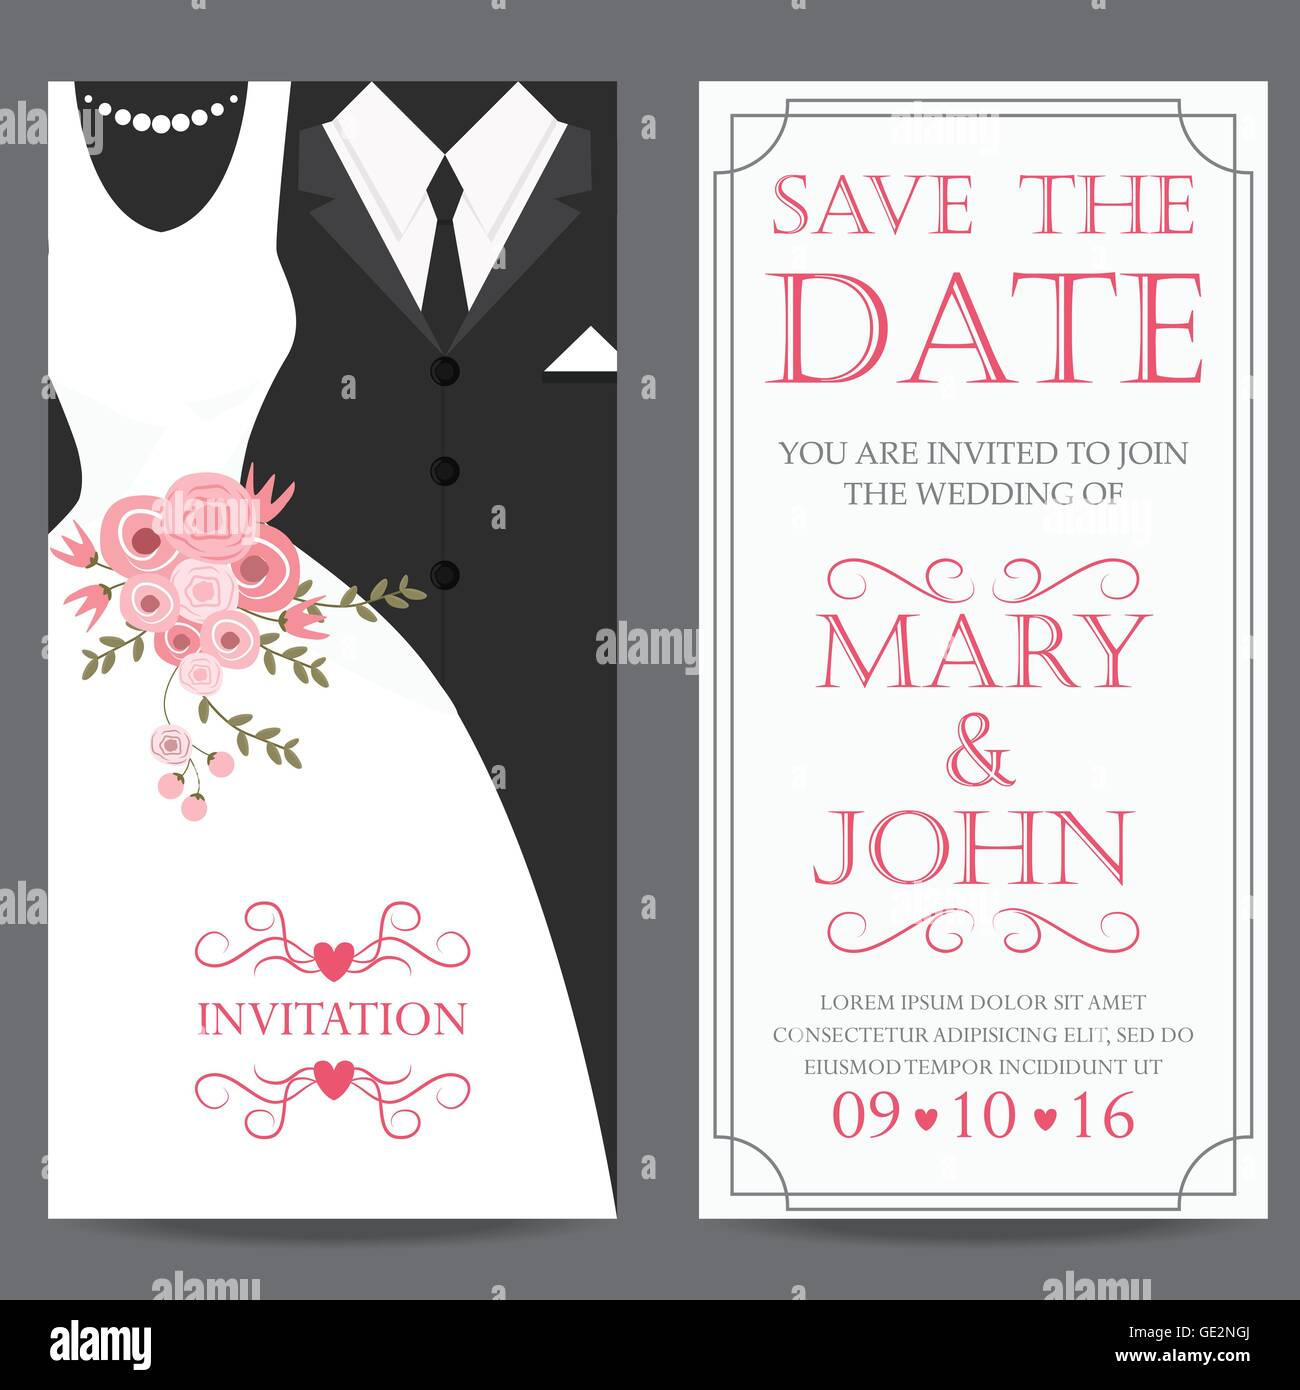 wedding invitation card, bride and groom dress concept. love and ...